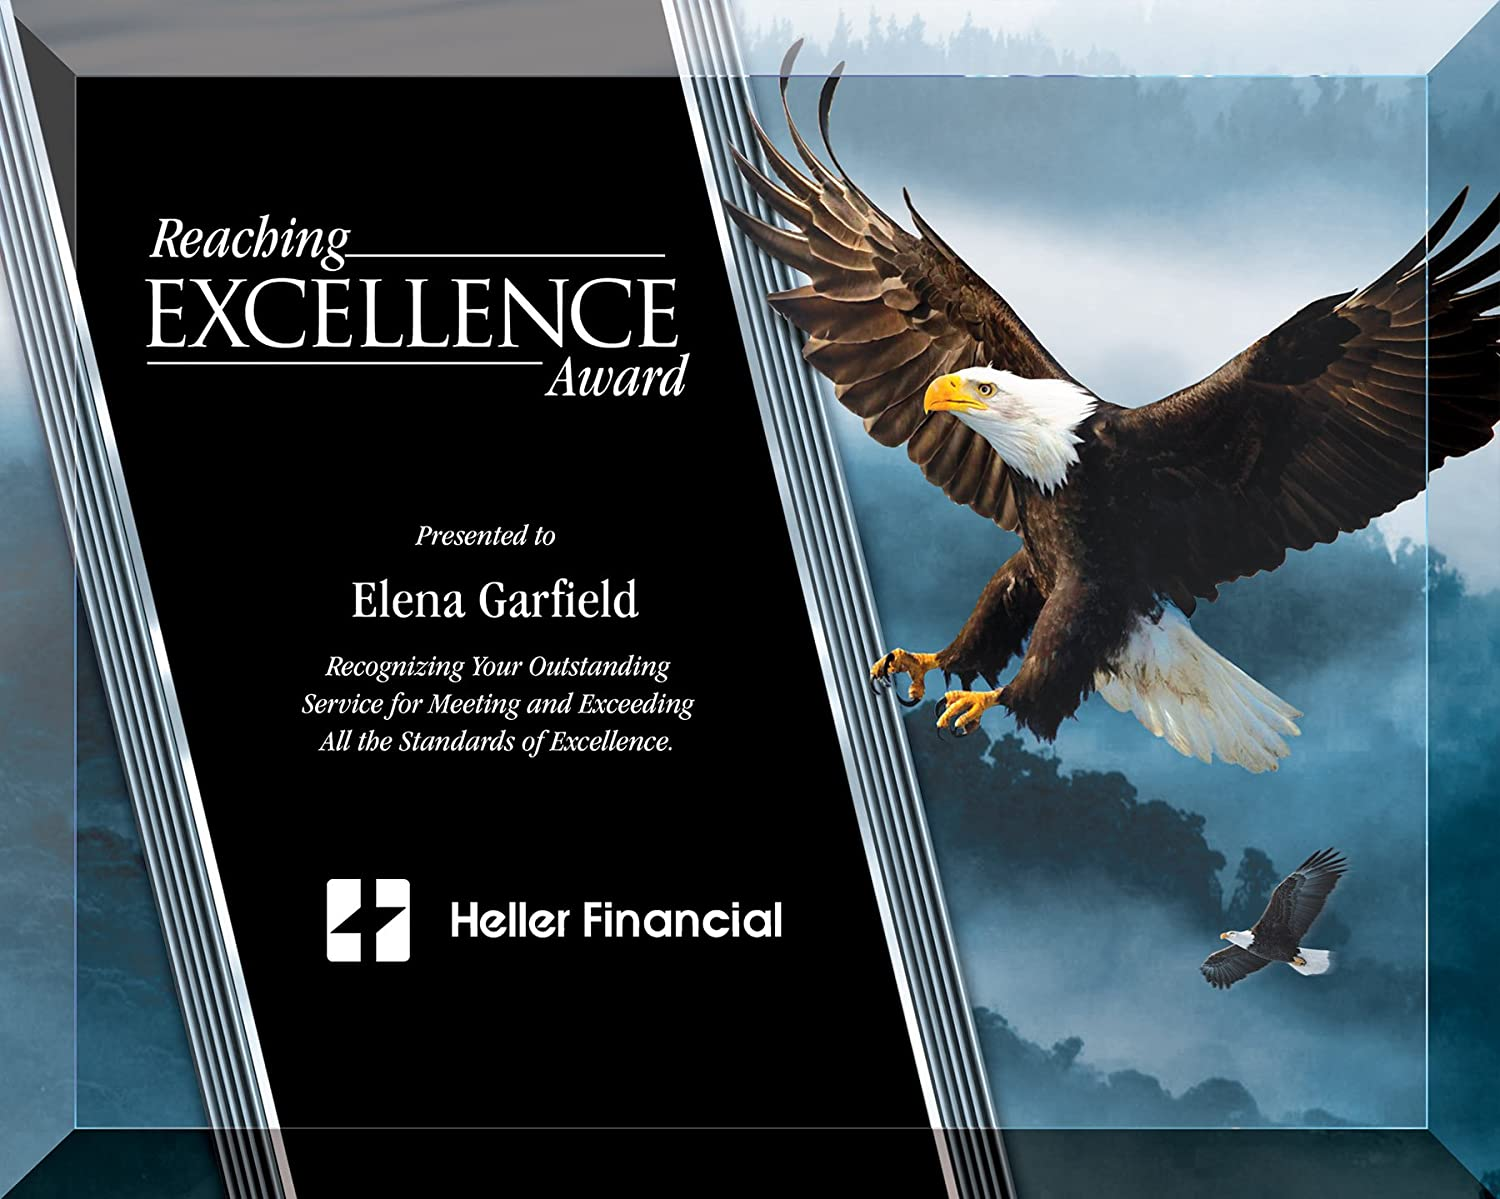 8 X 10 Inch Full Color Plaque Glass Includes Personalizat Eagle Over Limited price item handling